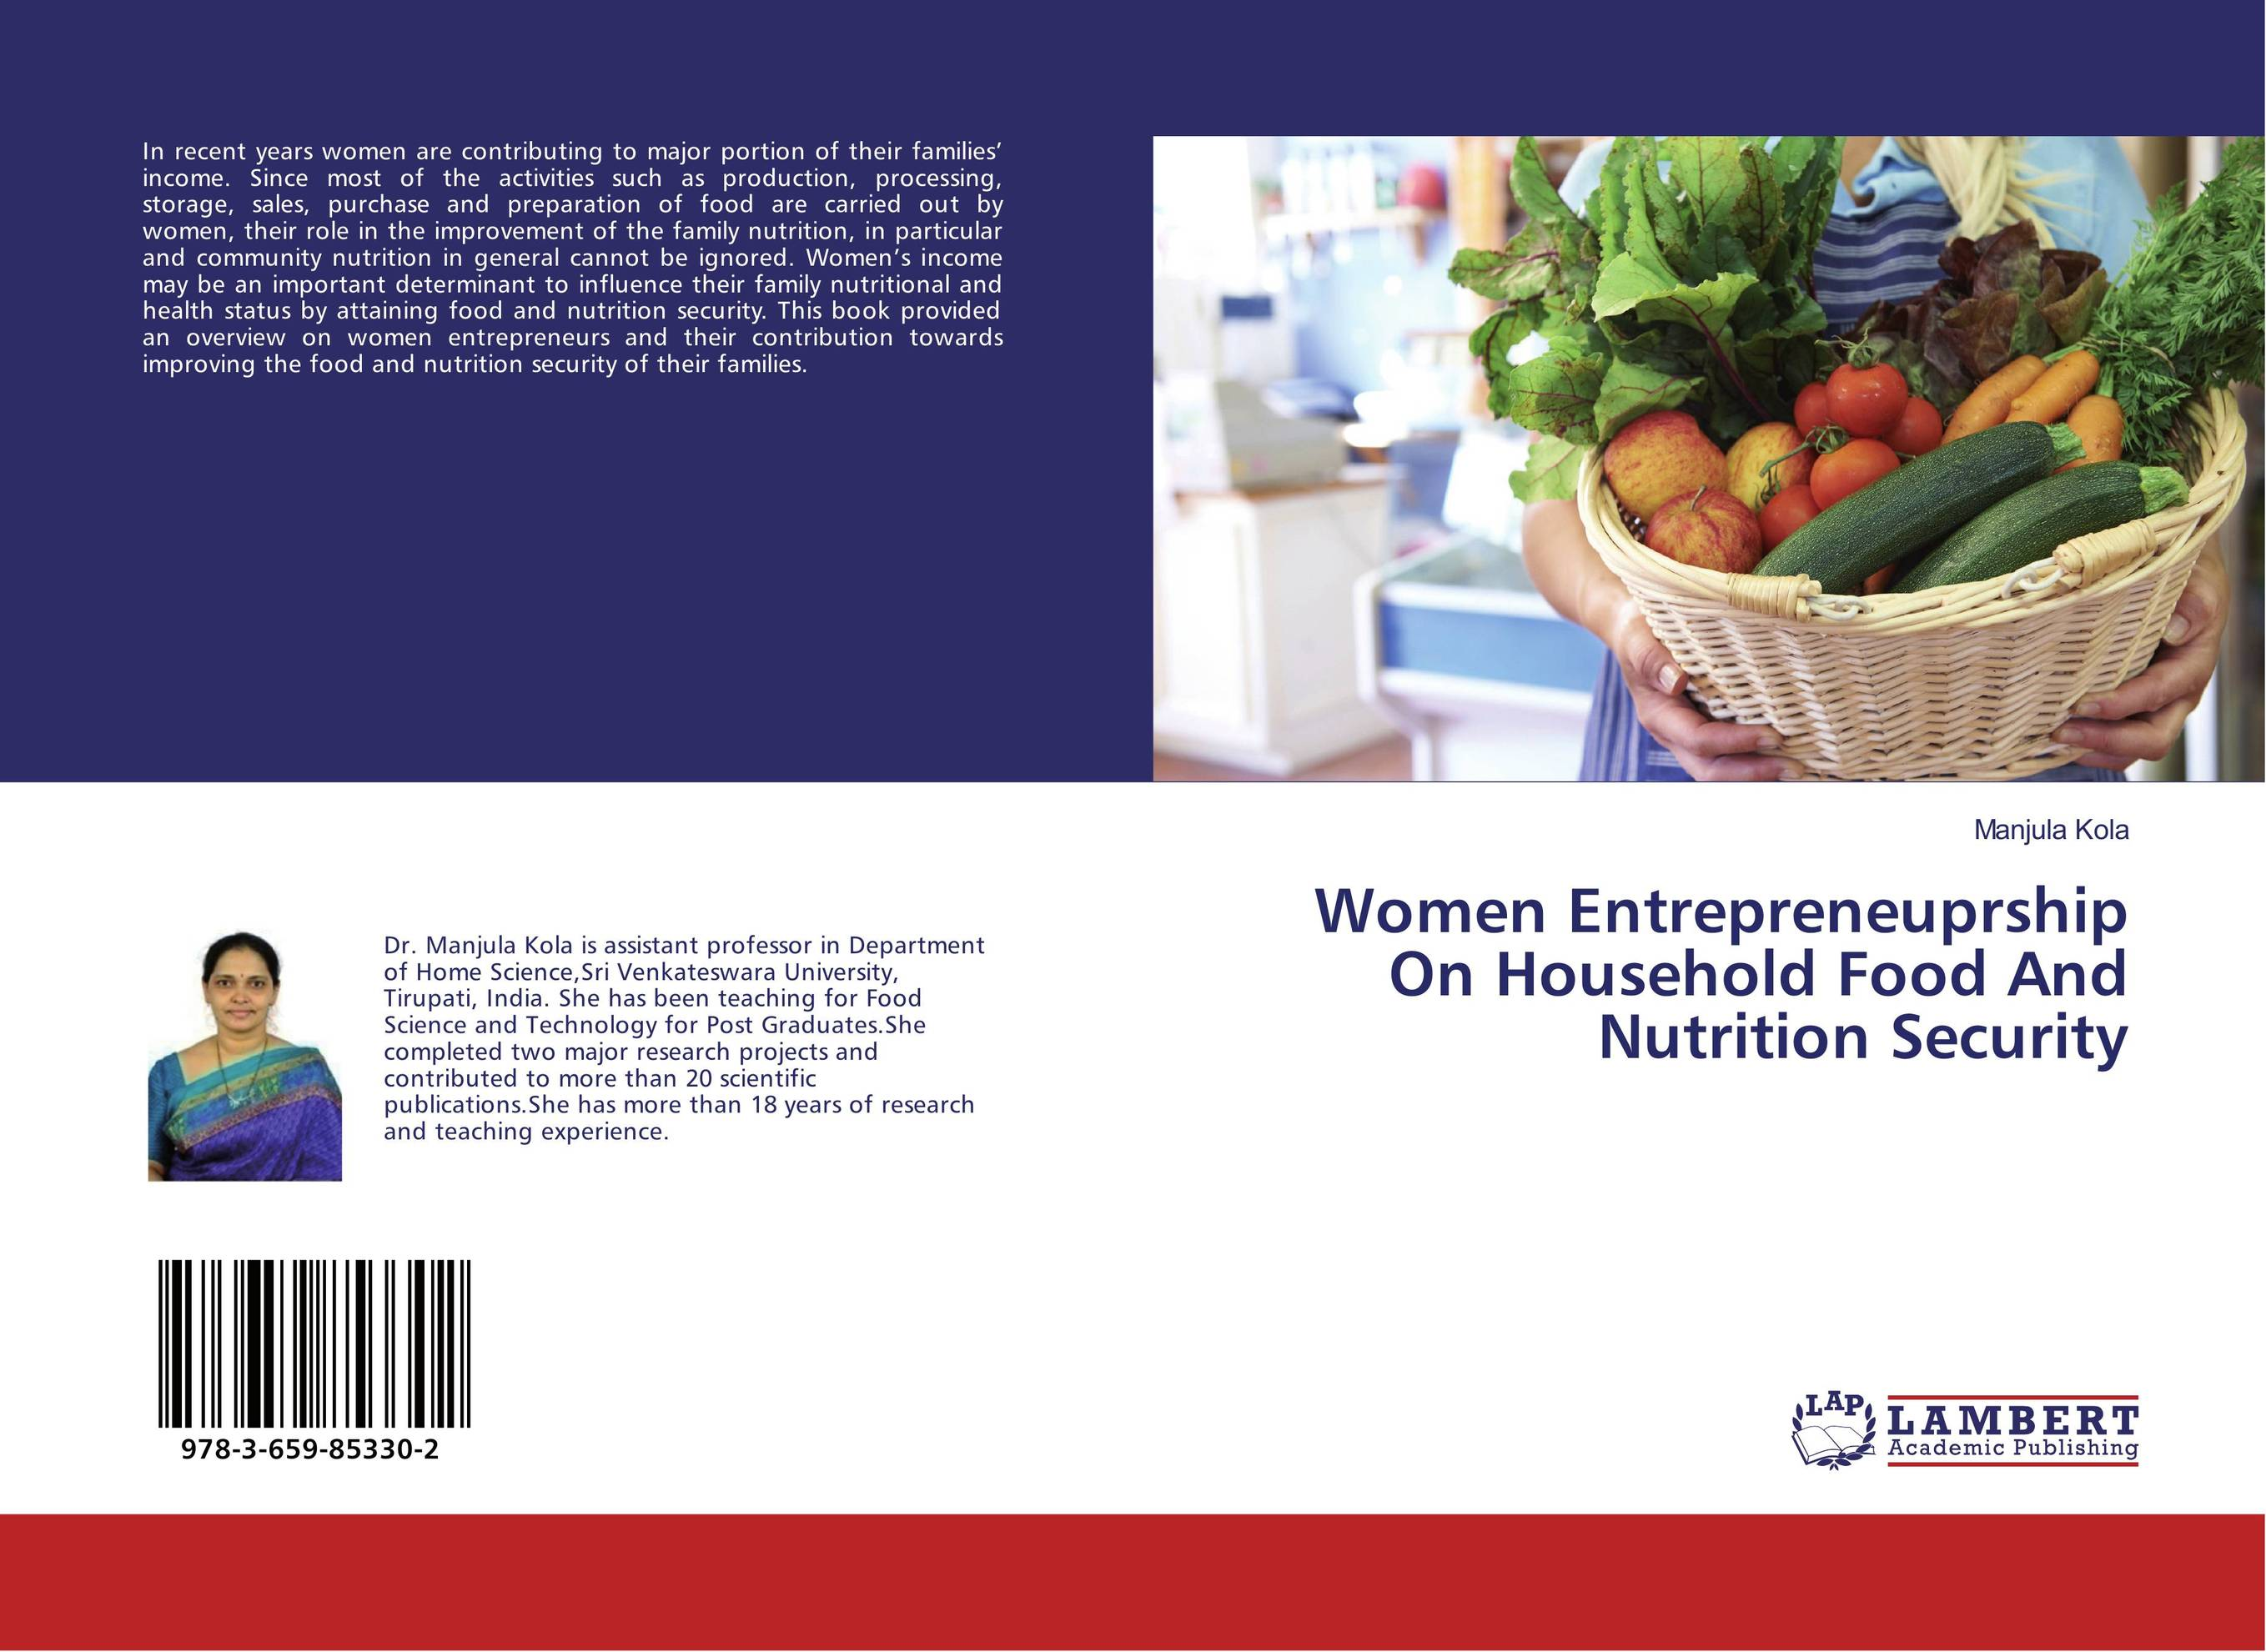 Women Entrepreneuprship On Household Food And Nutrition Security changing attitude of family towards women in family business